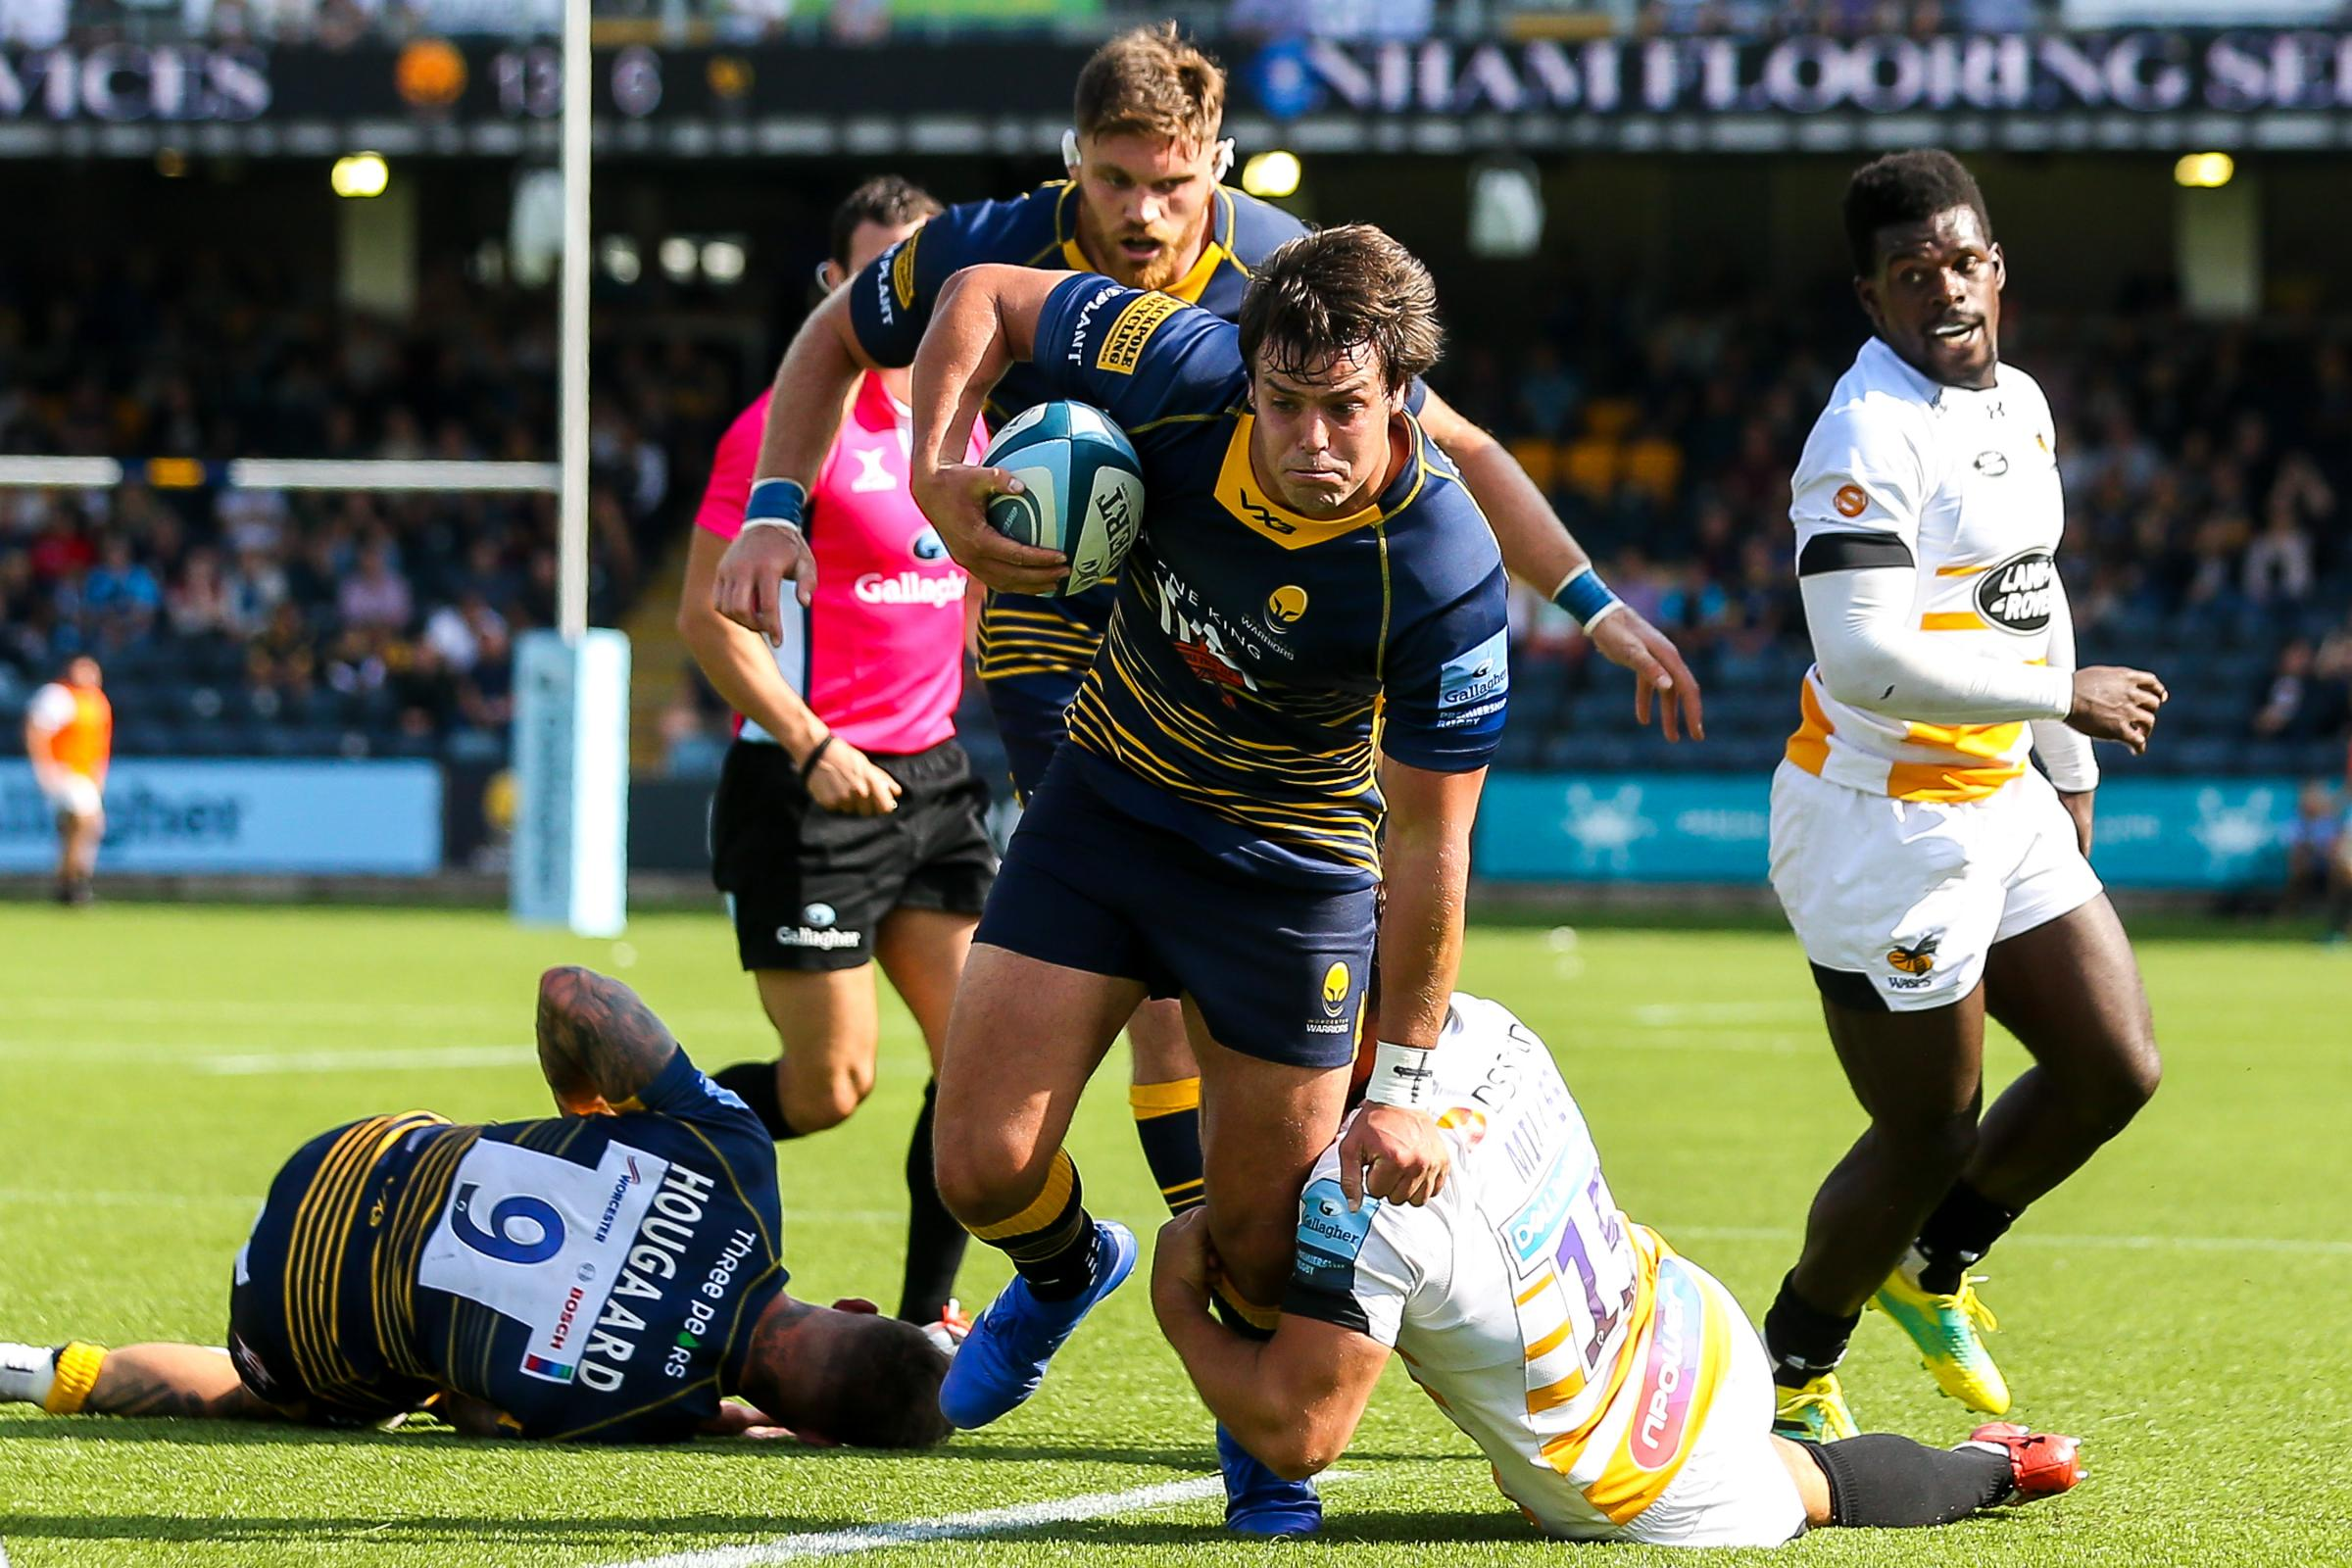 Francois Venter in action against Wasps earlier this season. Picture: Robbie Stephenson/JMP